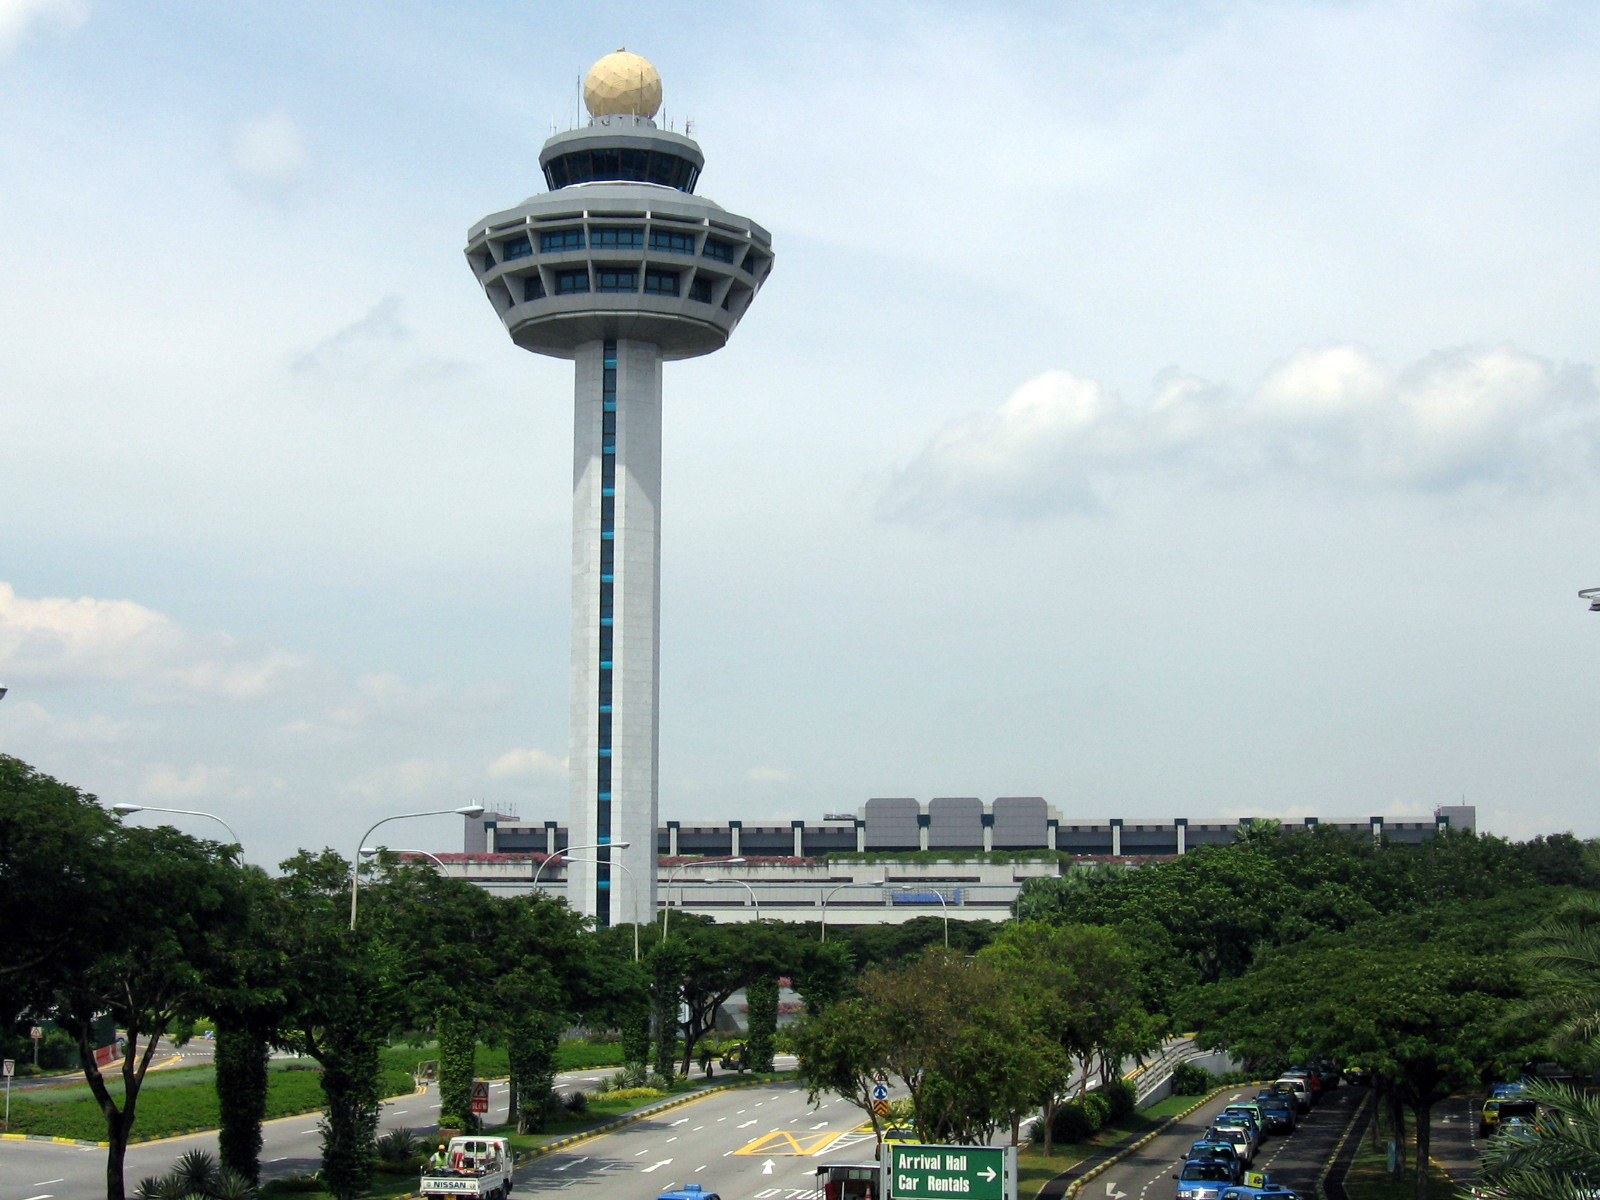 Singapore_Changi_Airport,_Control_Tower_2,_Dec_05.jpg